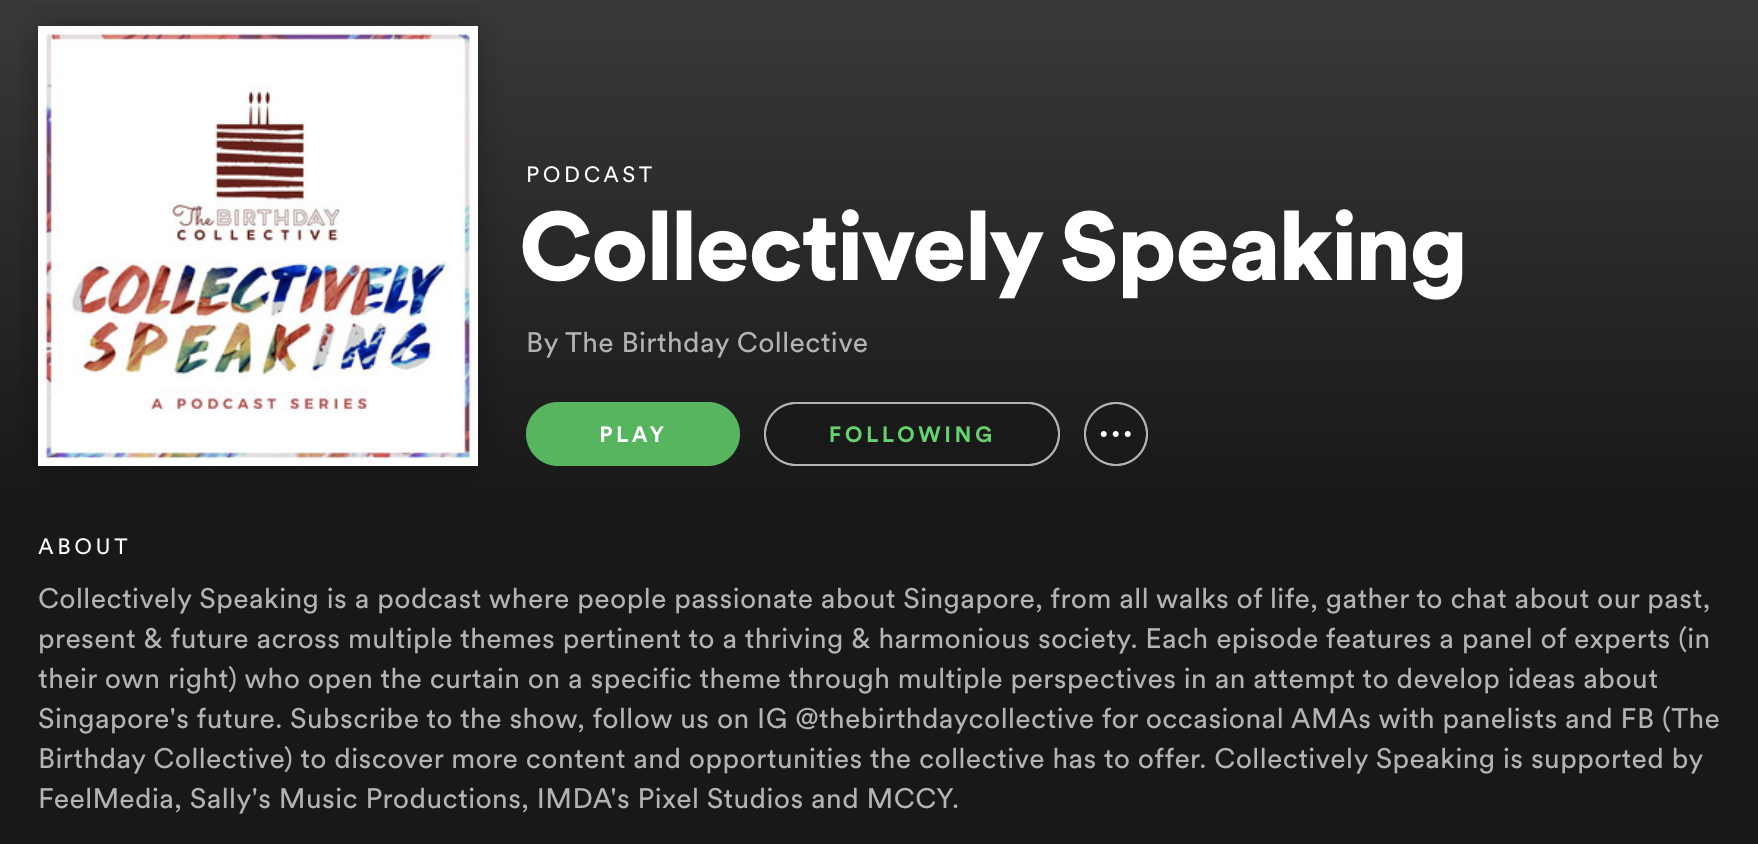 Podcast: Collectively Speaking